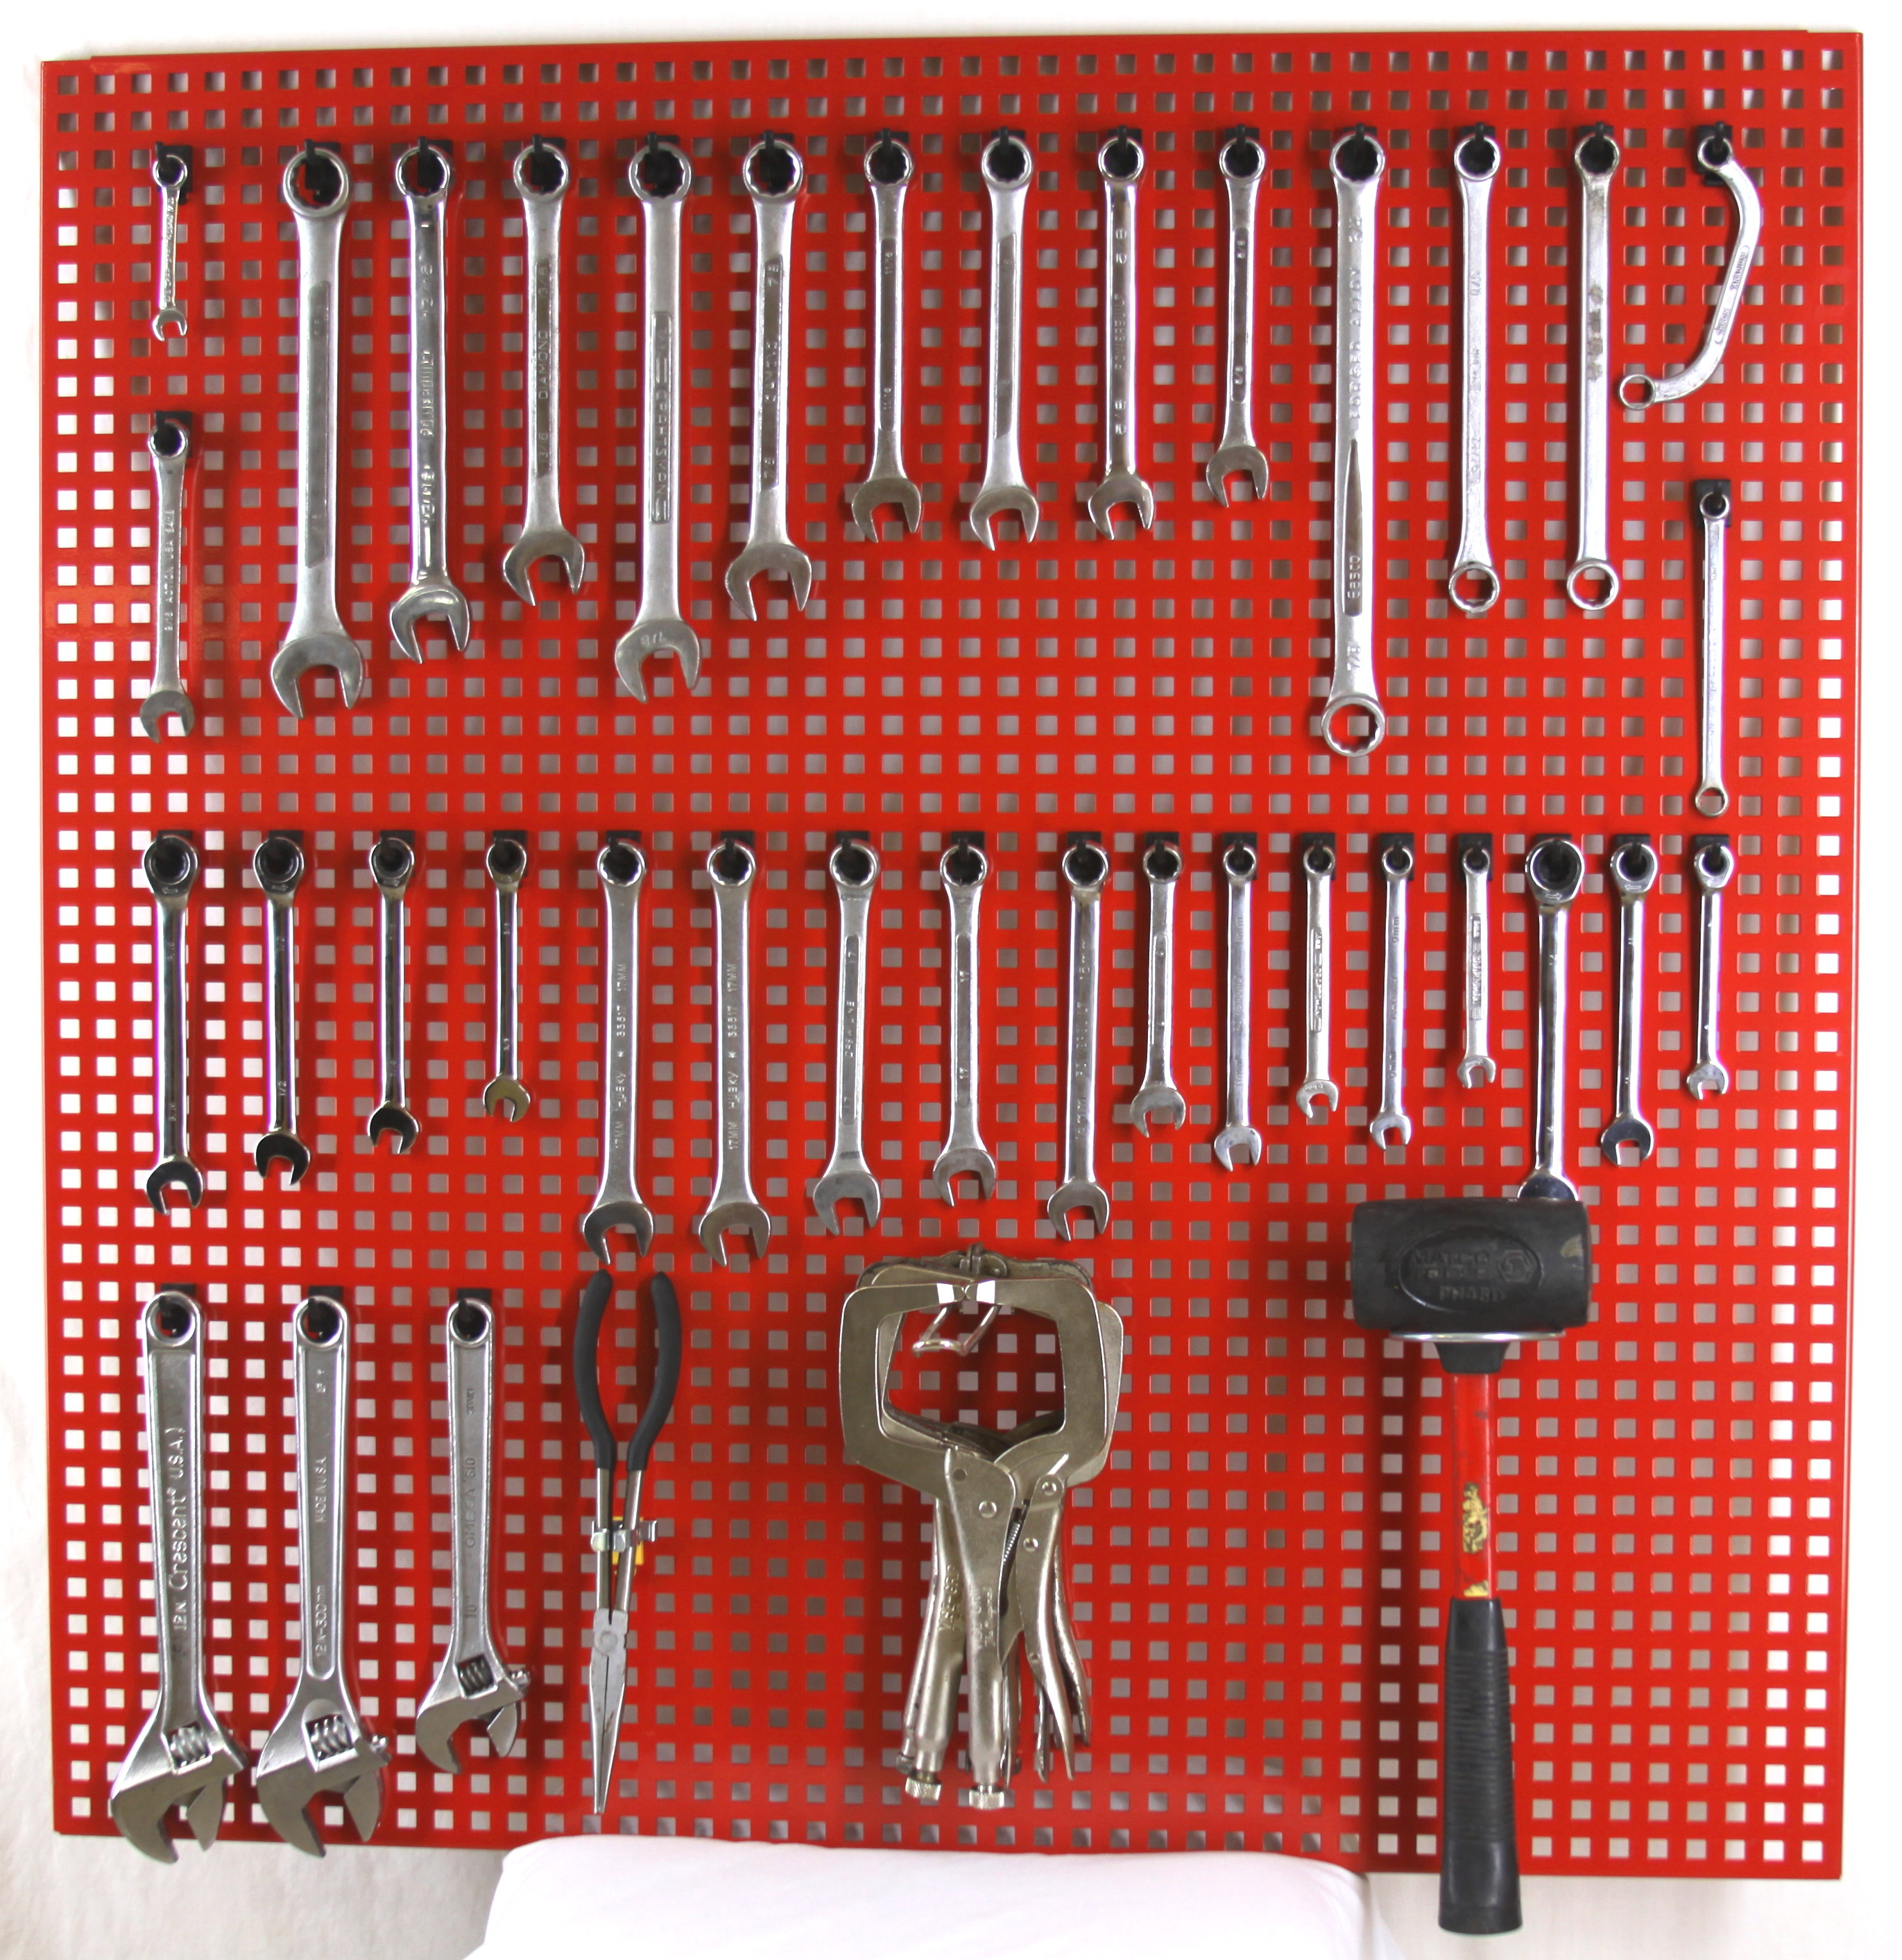 Tool Boards